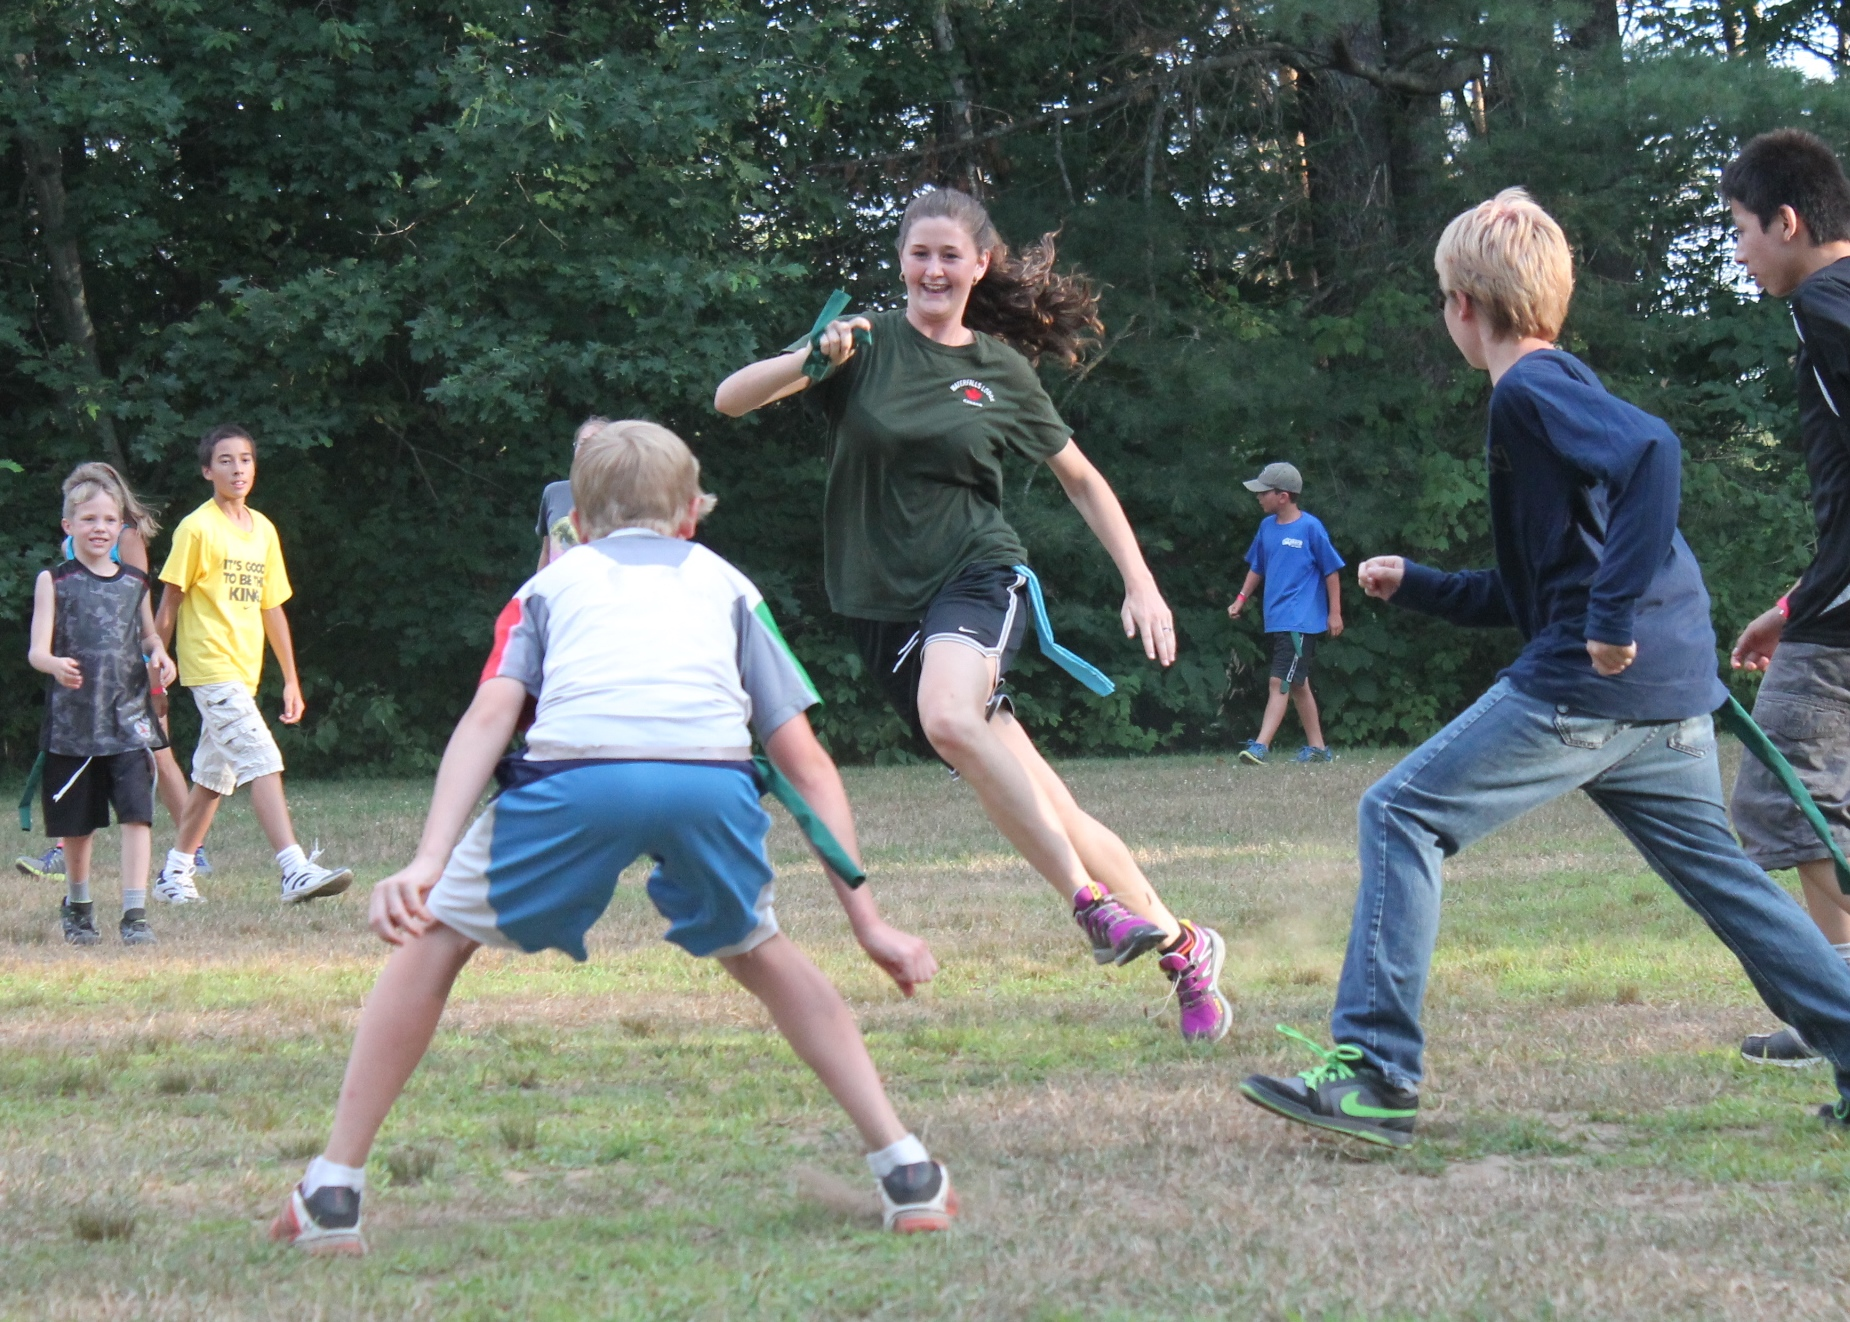 Campers running in field during game at christian adventure summer camp in haliburton, ontario